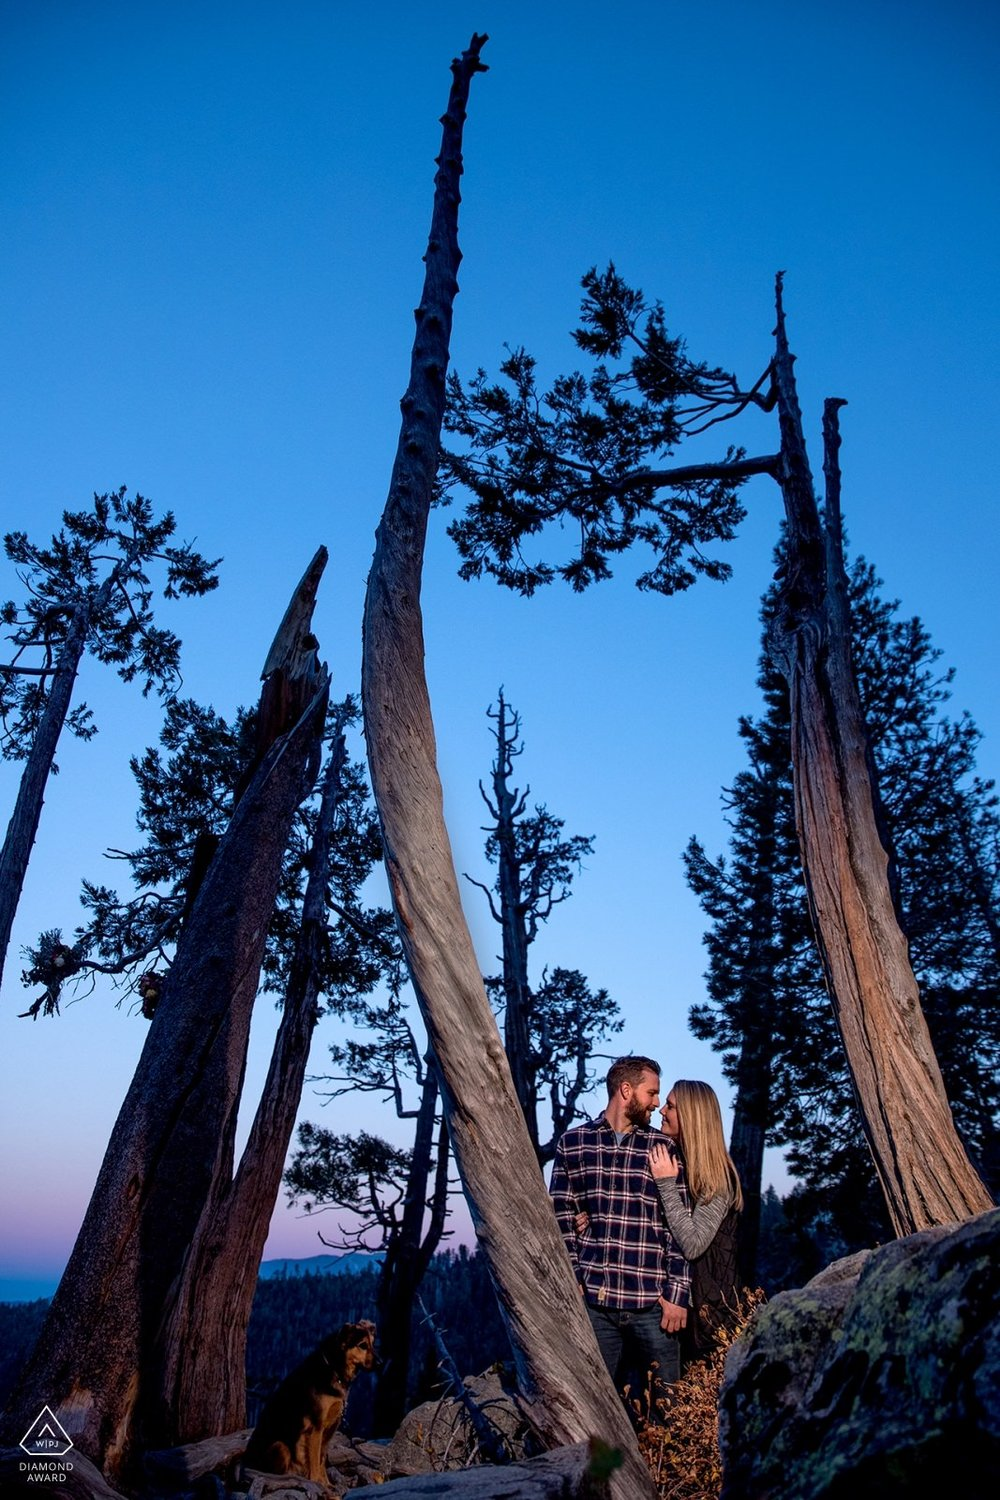 lake-tahoe-wedding-photographer-photography-engagement-proposal-emerald-bay-forest-best-top-awarded